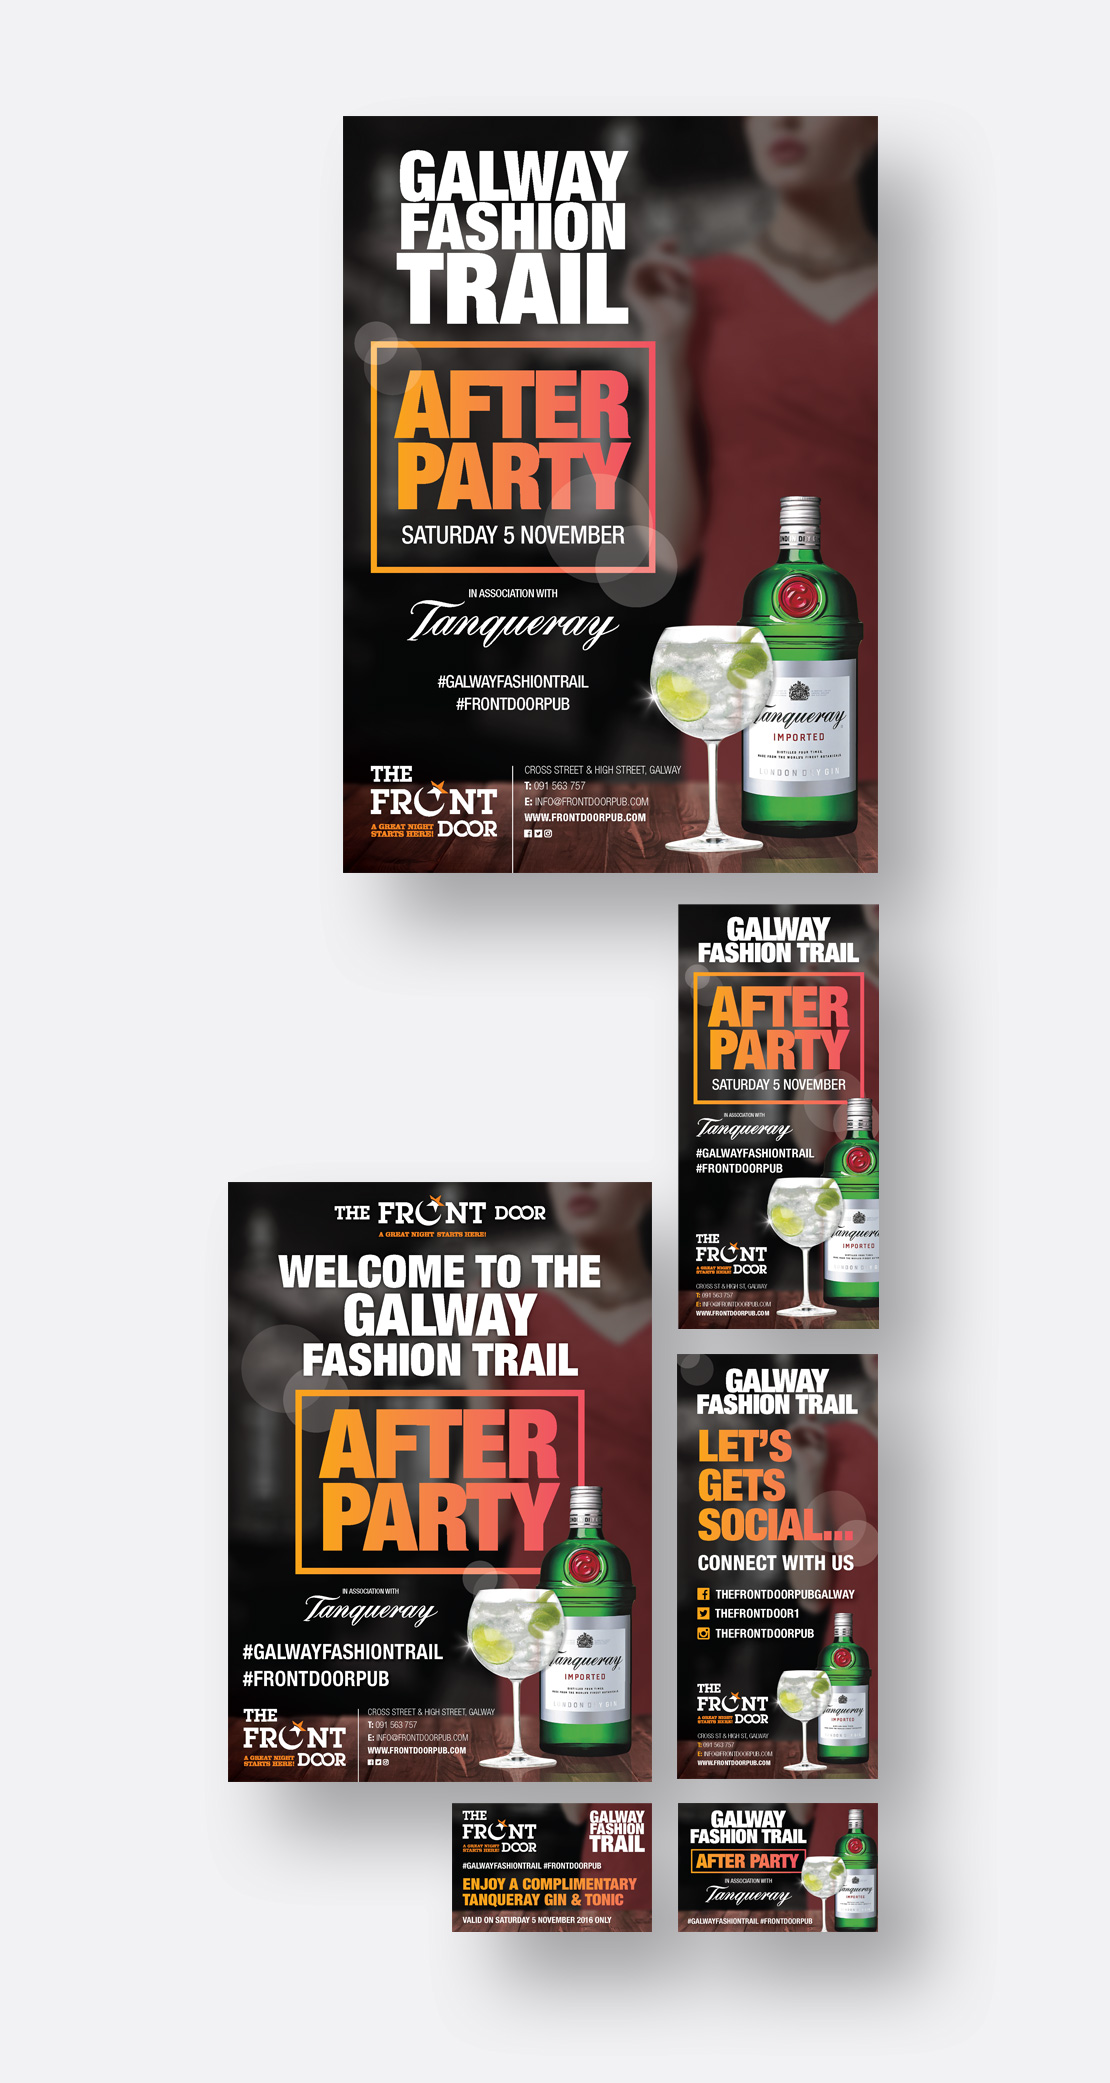 The Front Door Galway Fashion Trail After-Party promotional material